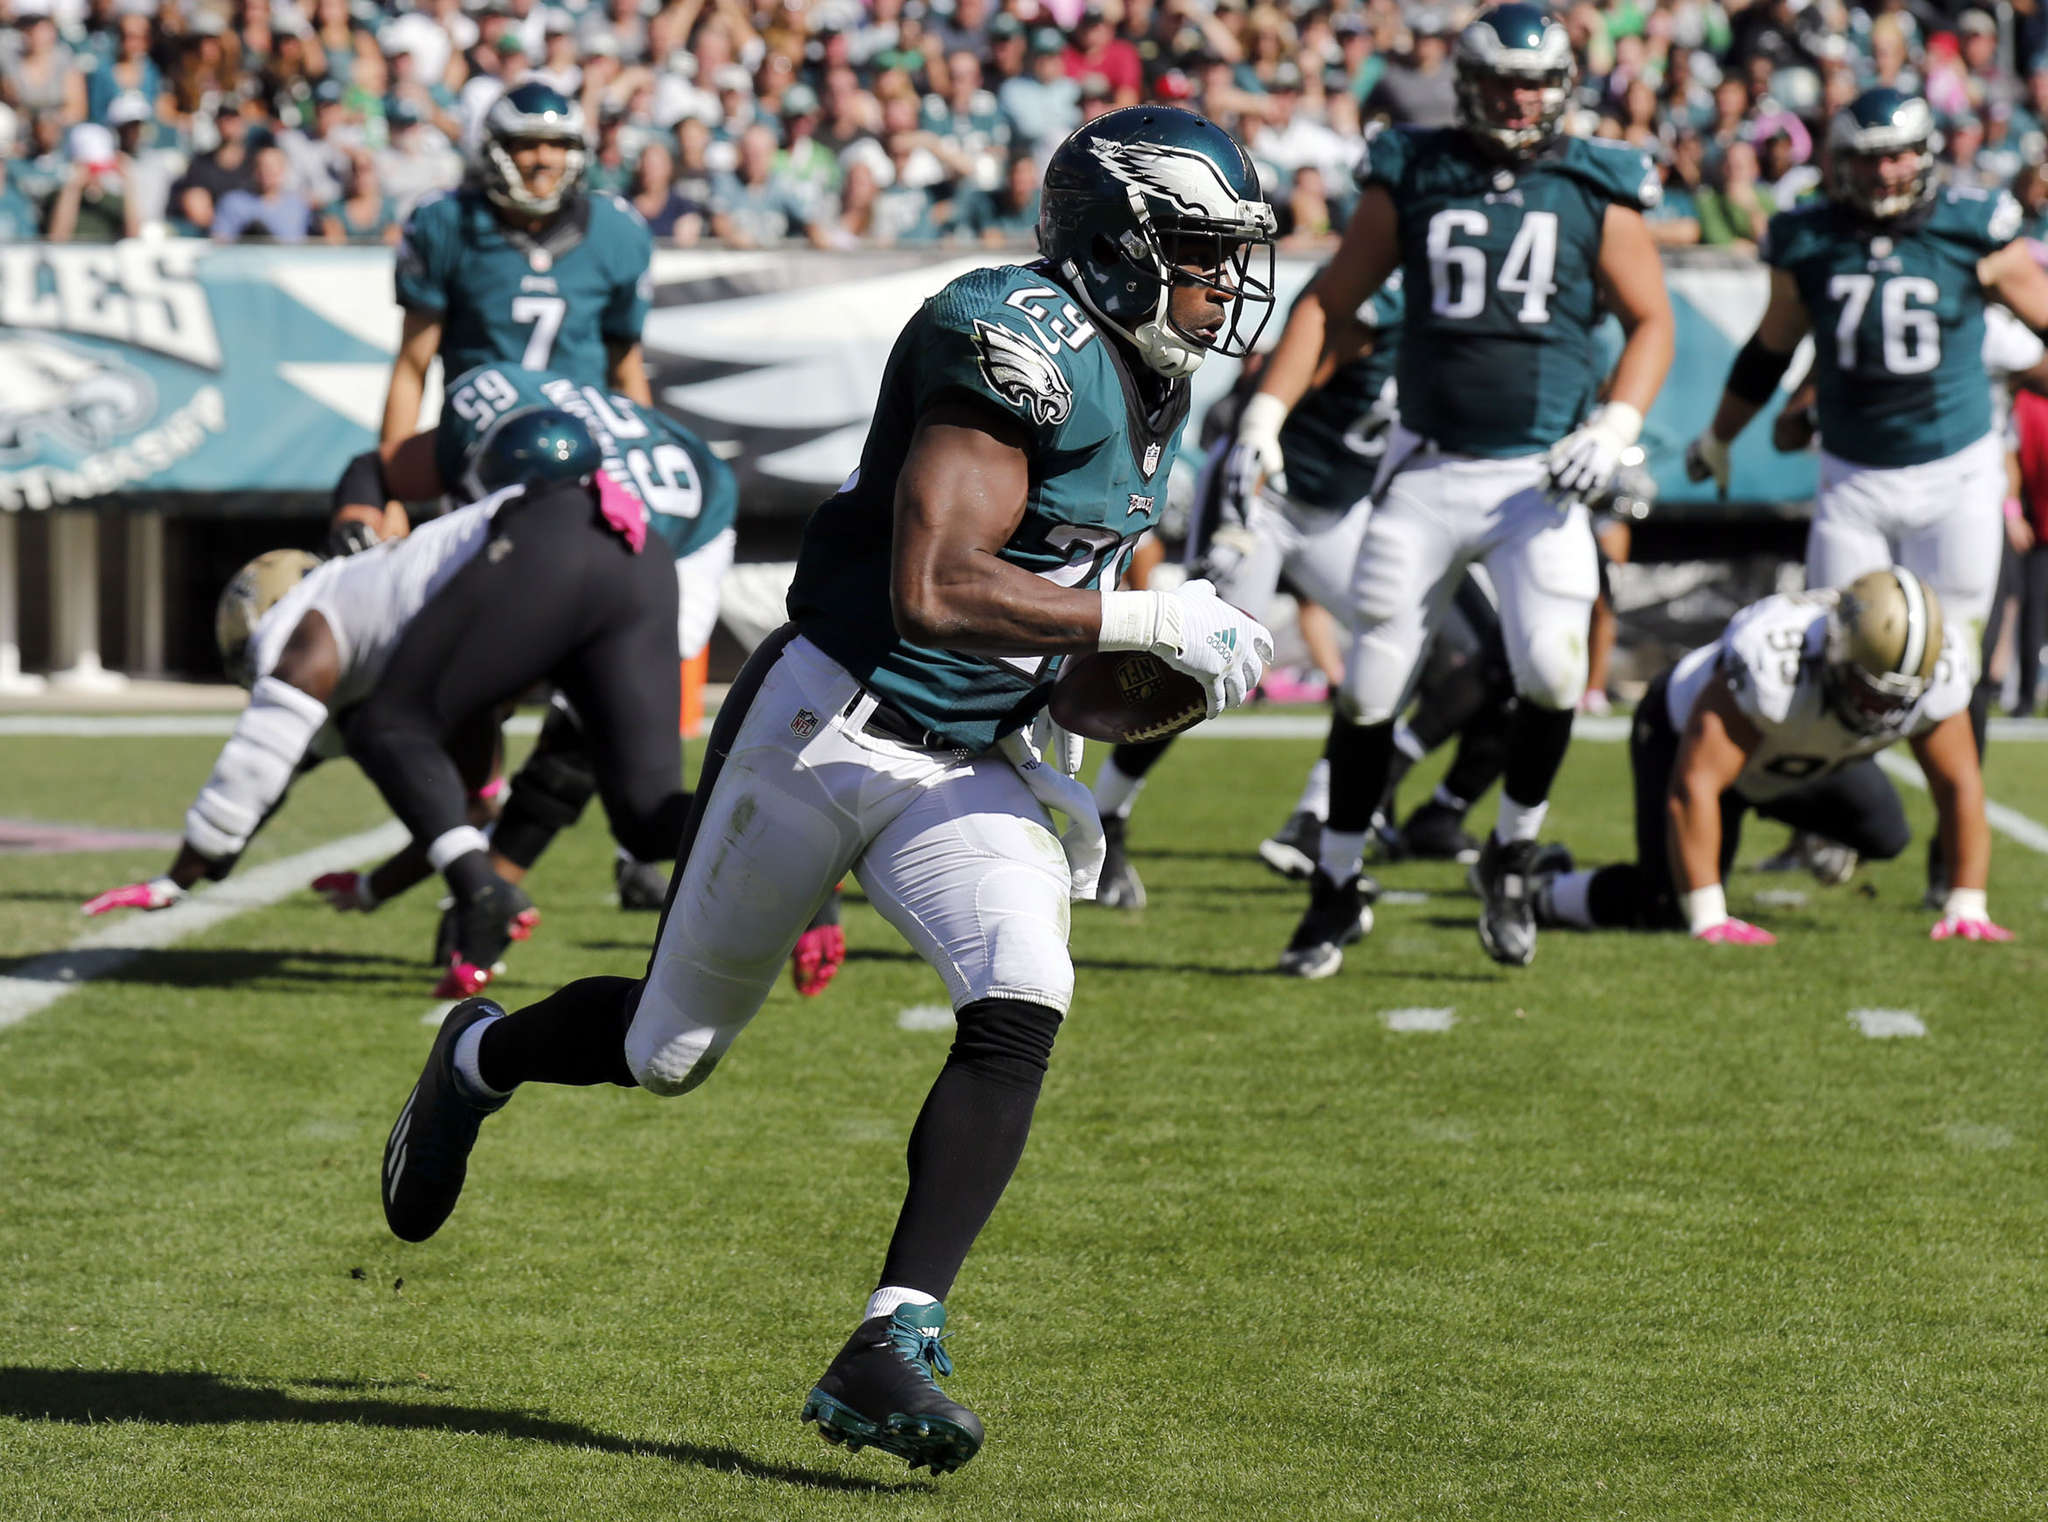 YONG KIM / STAFF PHOTOGRAPHER DeMarco Murray is averaging just 2.7 yards per carry in first five games.